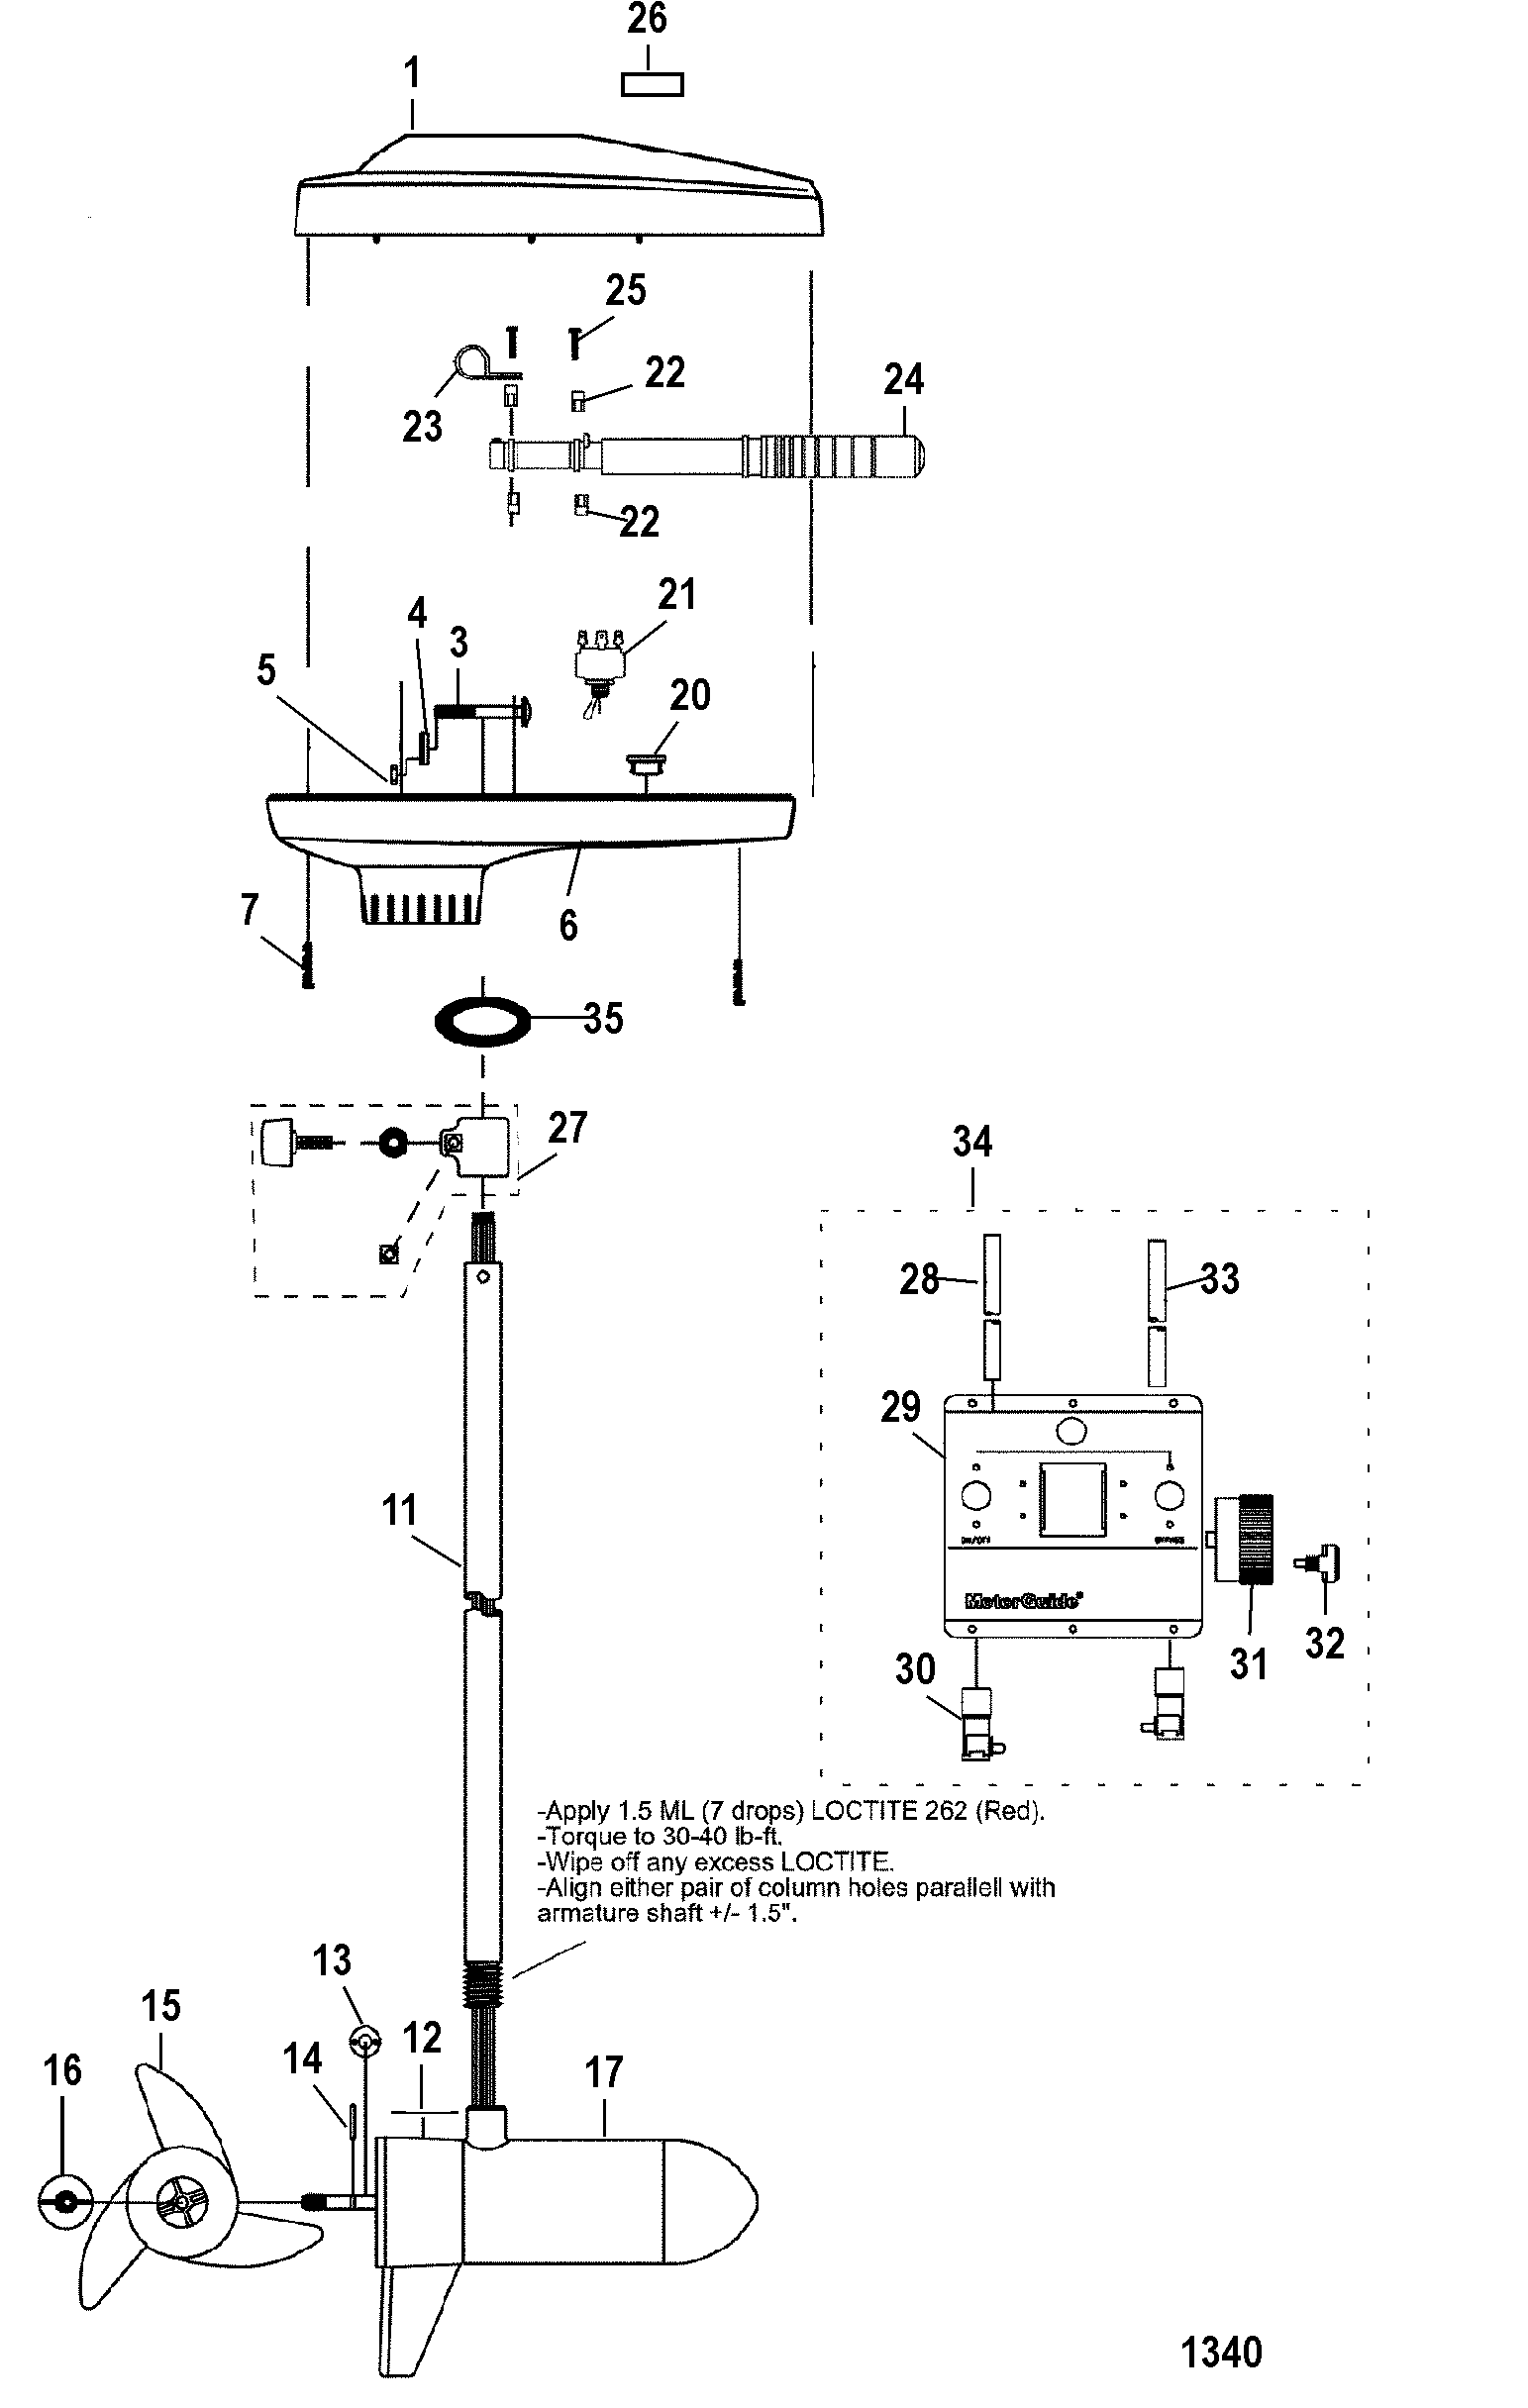 hight resolution of diagram of 1989 motorguide trolling motor 9001183uj wiring harness diagram also 24 volt trolling motor wiring